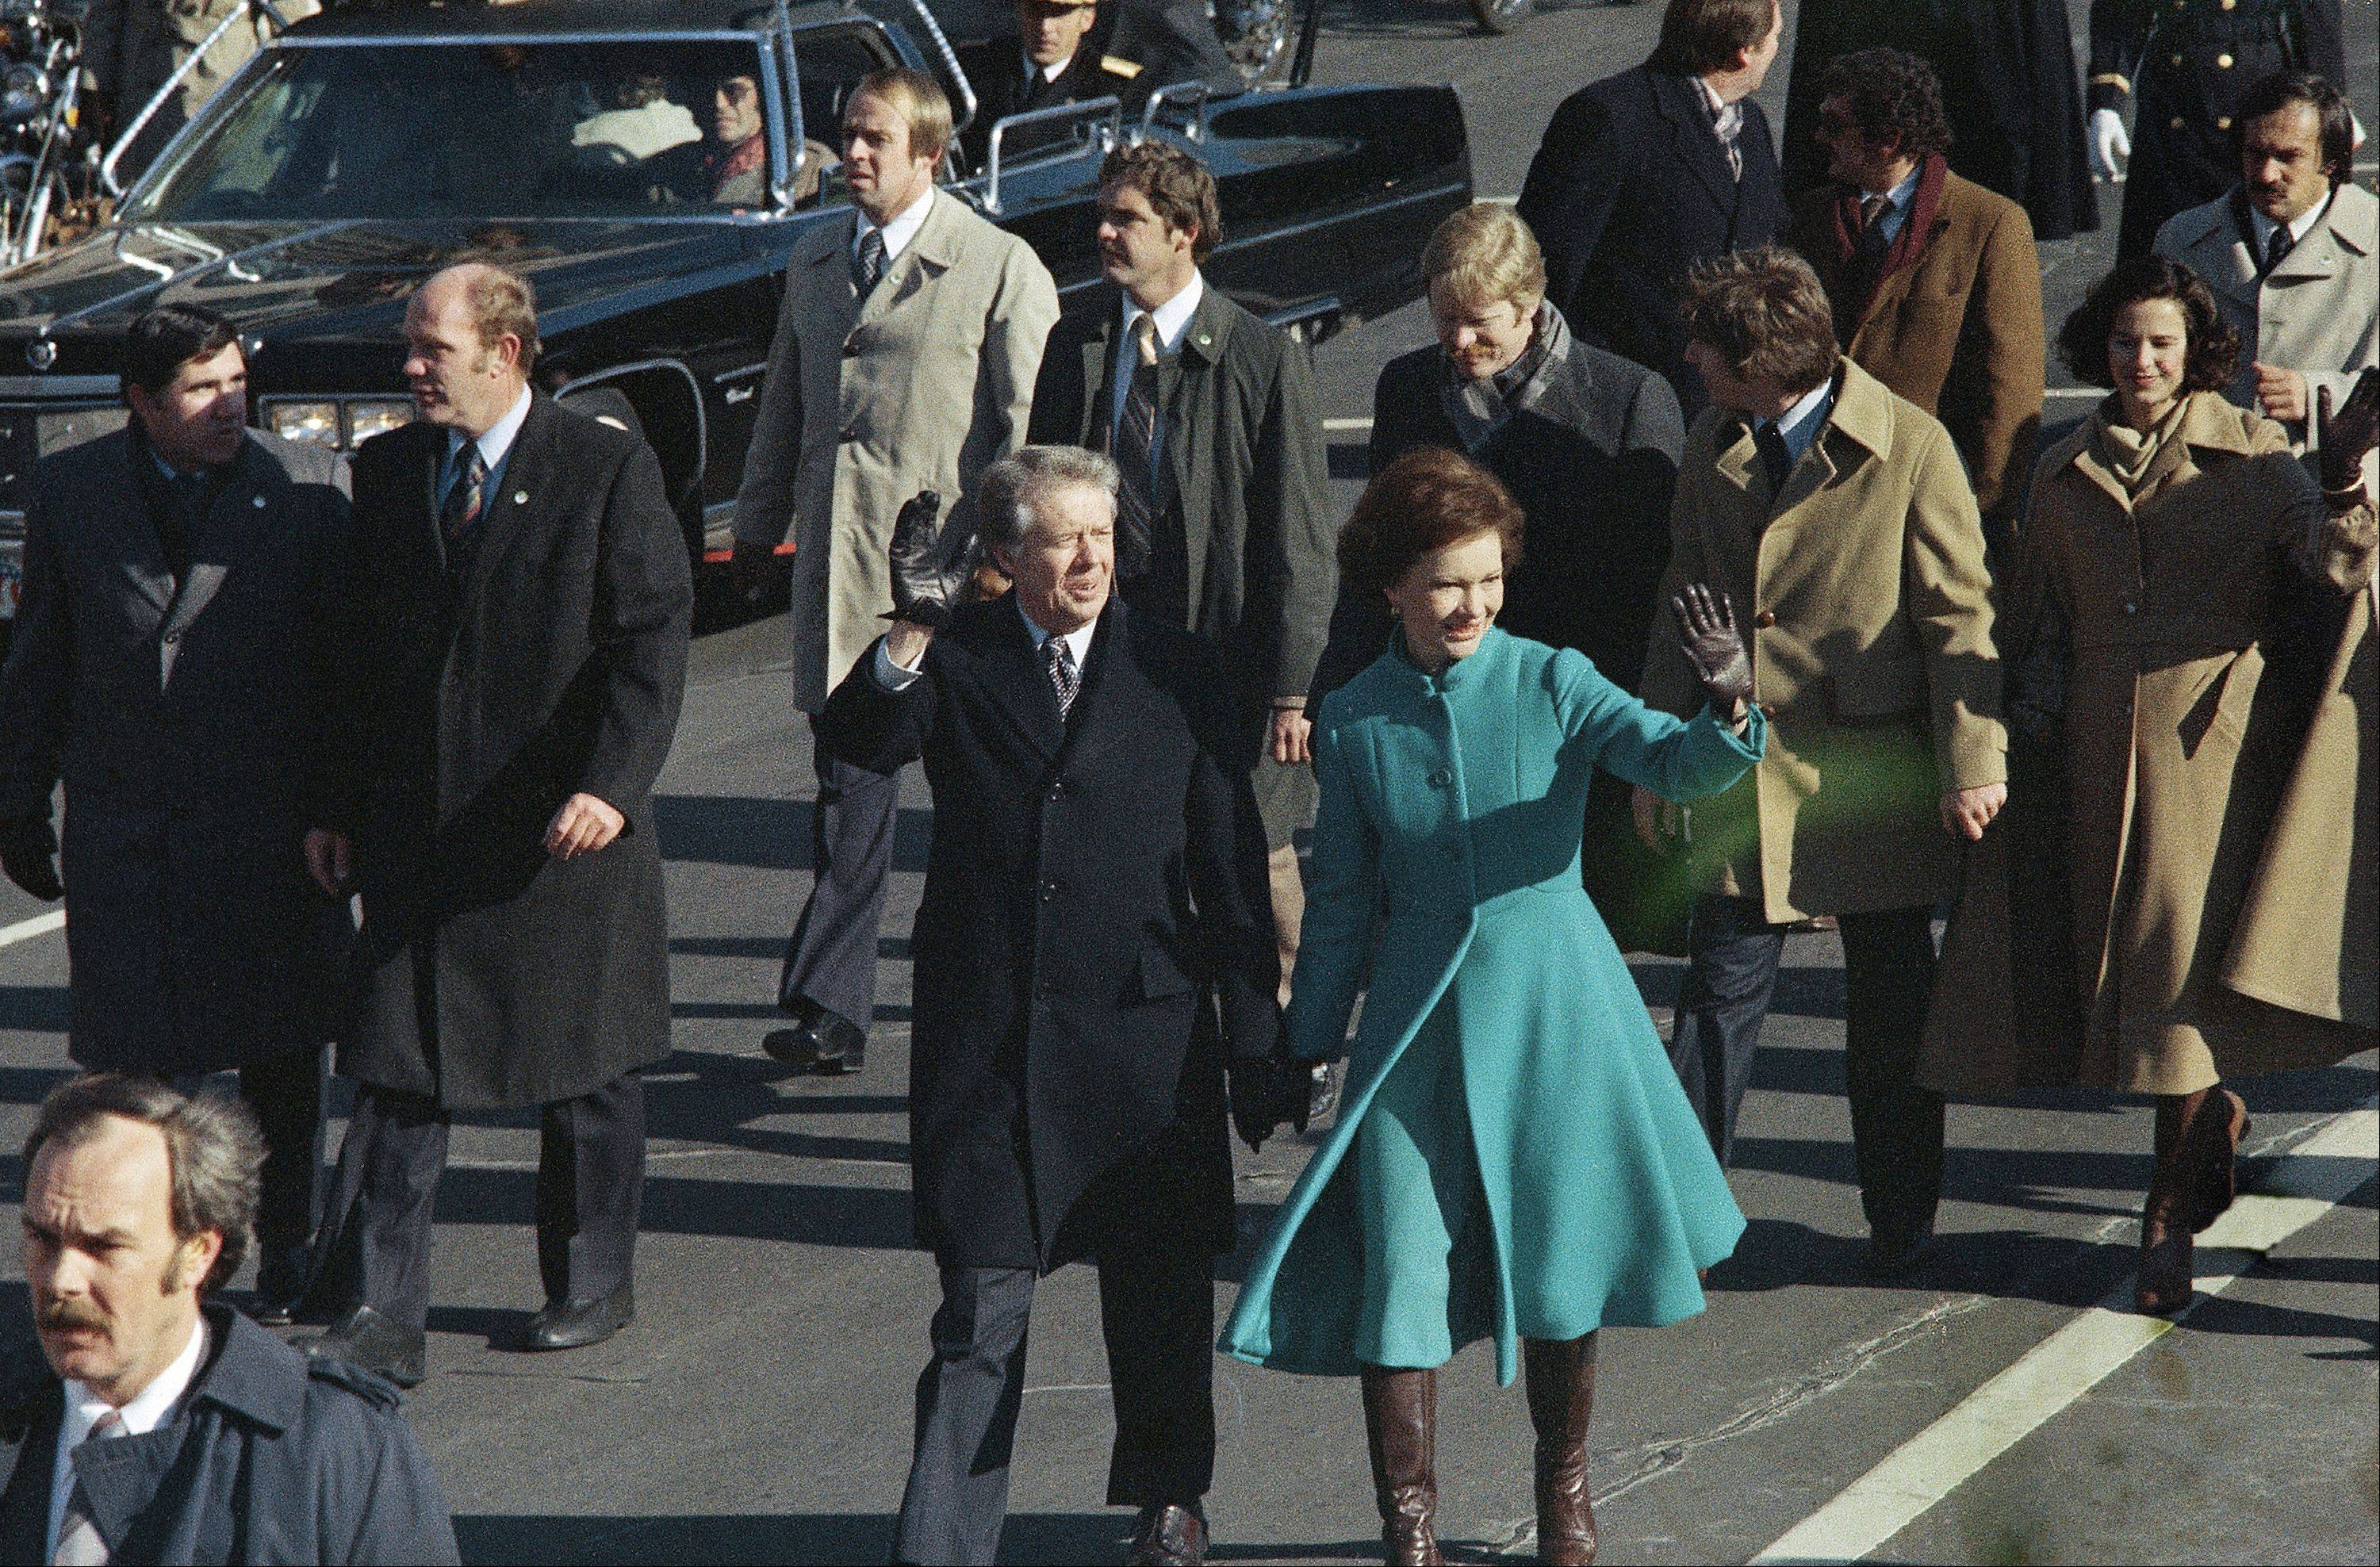 This Jan. 20, 1977 file photo shows President Jimmy Carter and First Lady Rosalynn Carter waving as they walk down Pennsylvania Avenue .At some point on Inauguration Day, if all goes expected, the president's limousine will slow to a stop on its journey down Pennsylvania Avenue from the Capitol to the White House. In that moment, Pennsylvania Avenue is America's red carpet. And the president is the only celebrity on it. The victory walk has become an iconic inaugural moment, a tradition dates only to President Jimmy Carter.